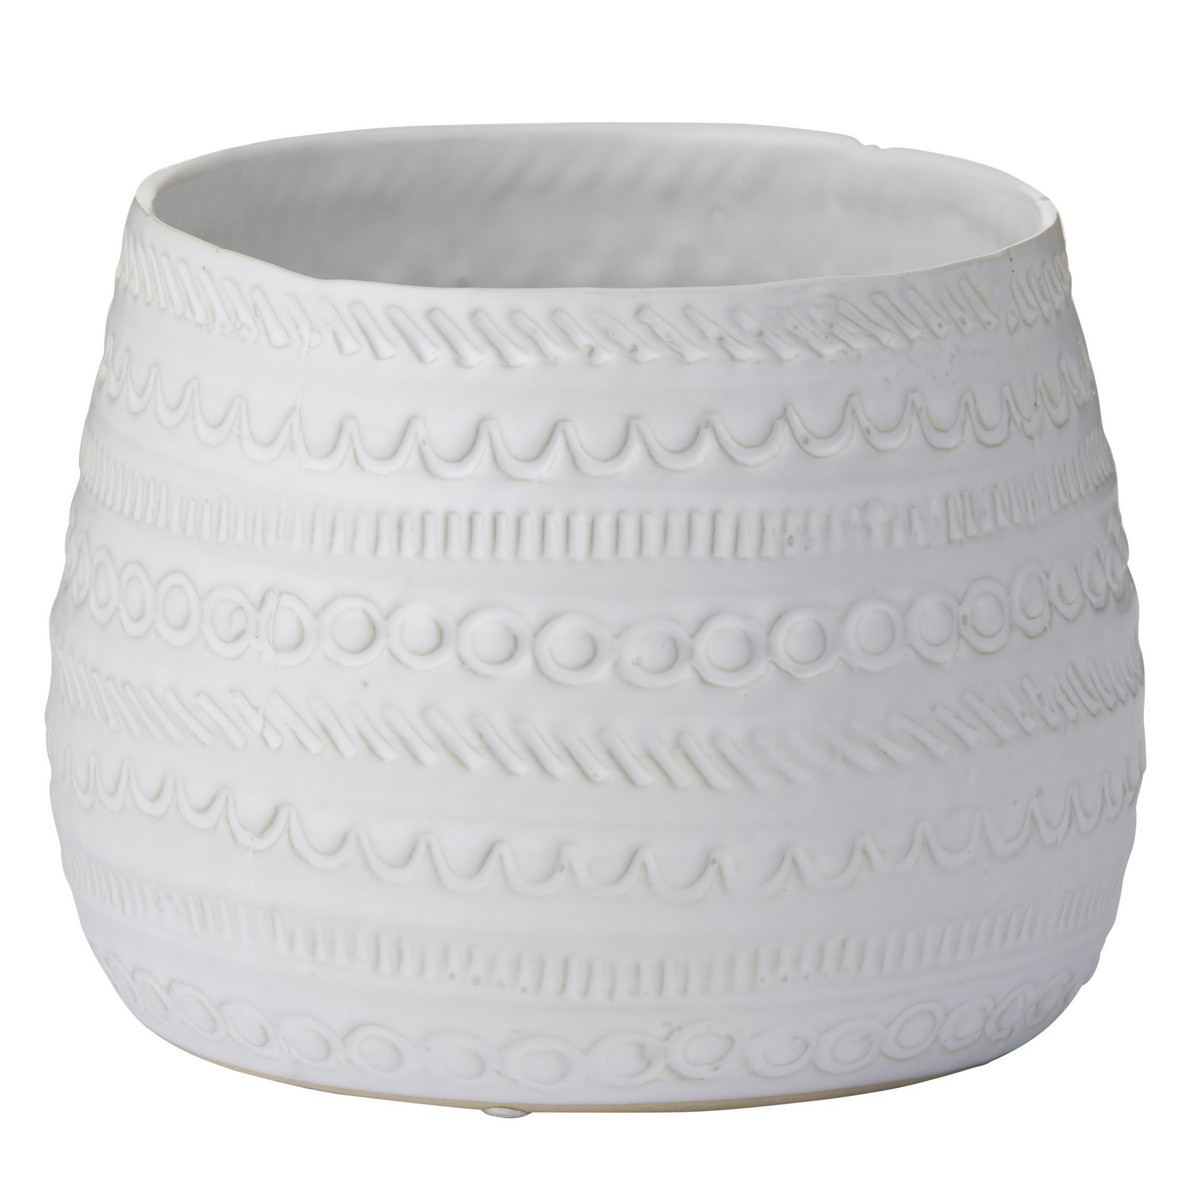 Tully Ceramic Pot